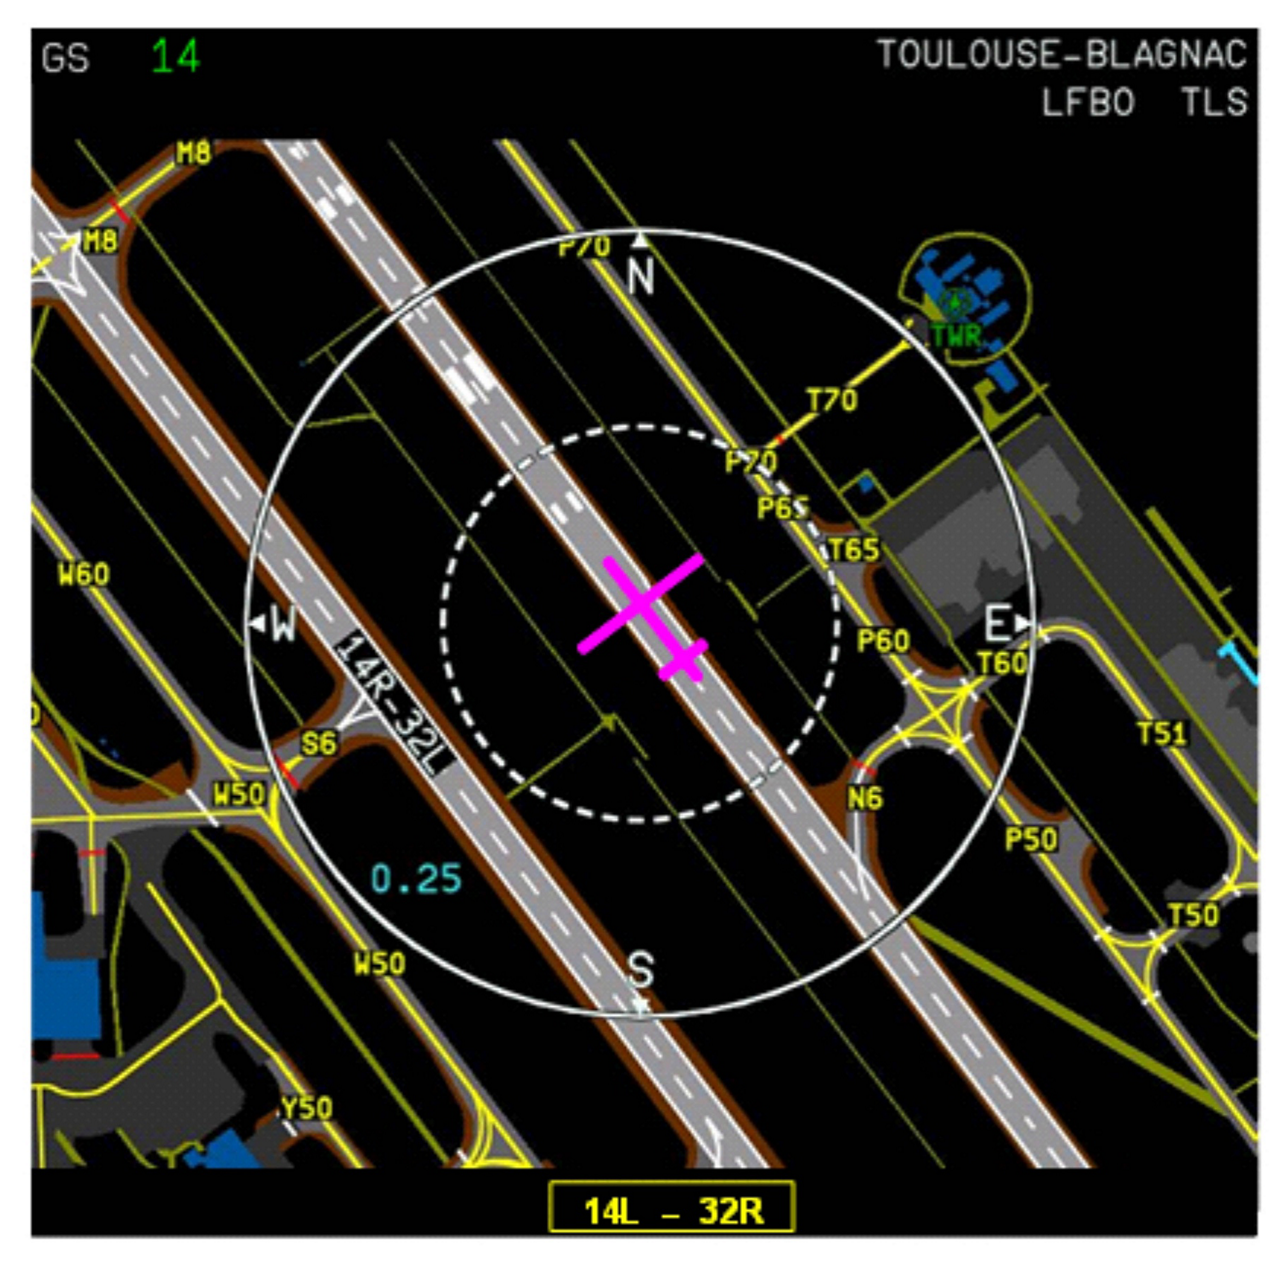 The On-Board Airport Navigation System (OANS), first developed for Airbus' A380, has now entered service with the A320 and A330 jetliner families